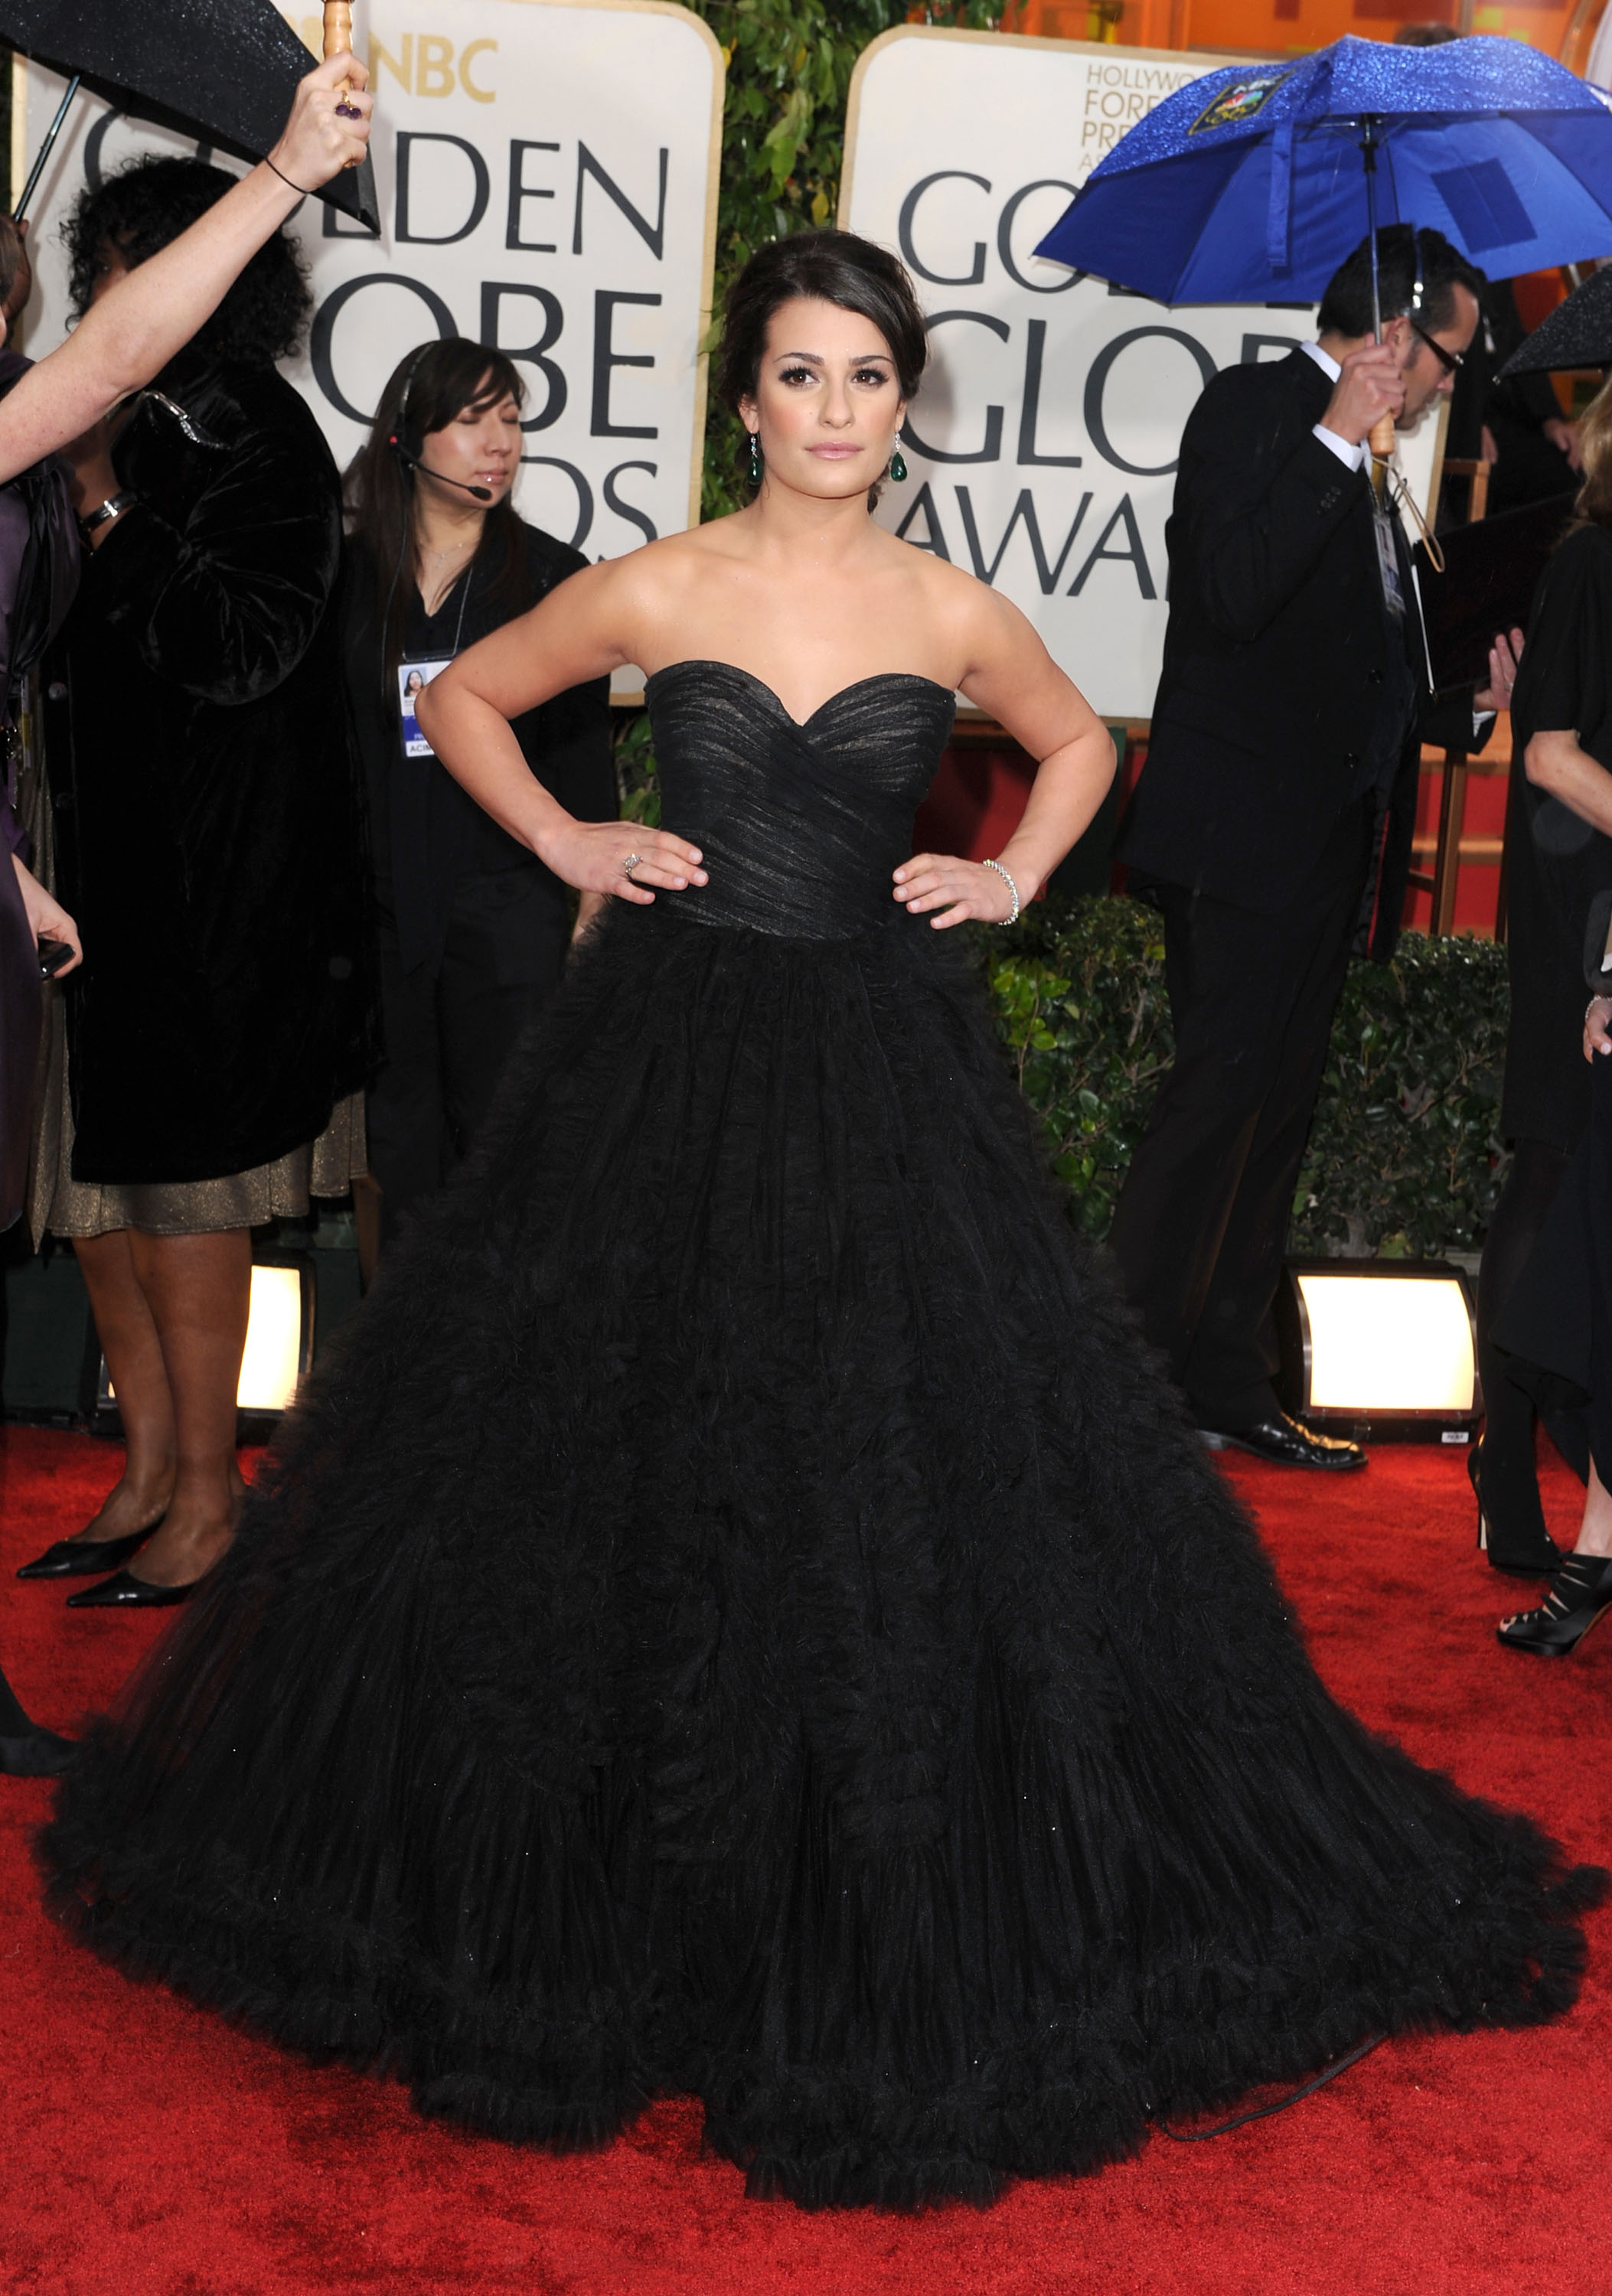 Lea Michele From Glee At 2010 Golden Globes likewise 54 also Breitling 1884 Chronometer Gmt Automatic Watch besides cid perfume Am Lid l Am Pid 64185w  products moreover Perfume Tom Ford Neroli Portofino Un Perfume De Autentico Lujo. on perfumes by mariah carey